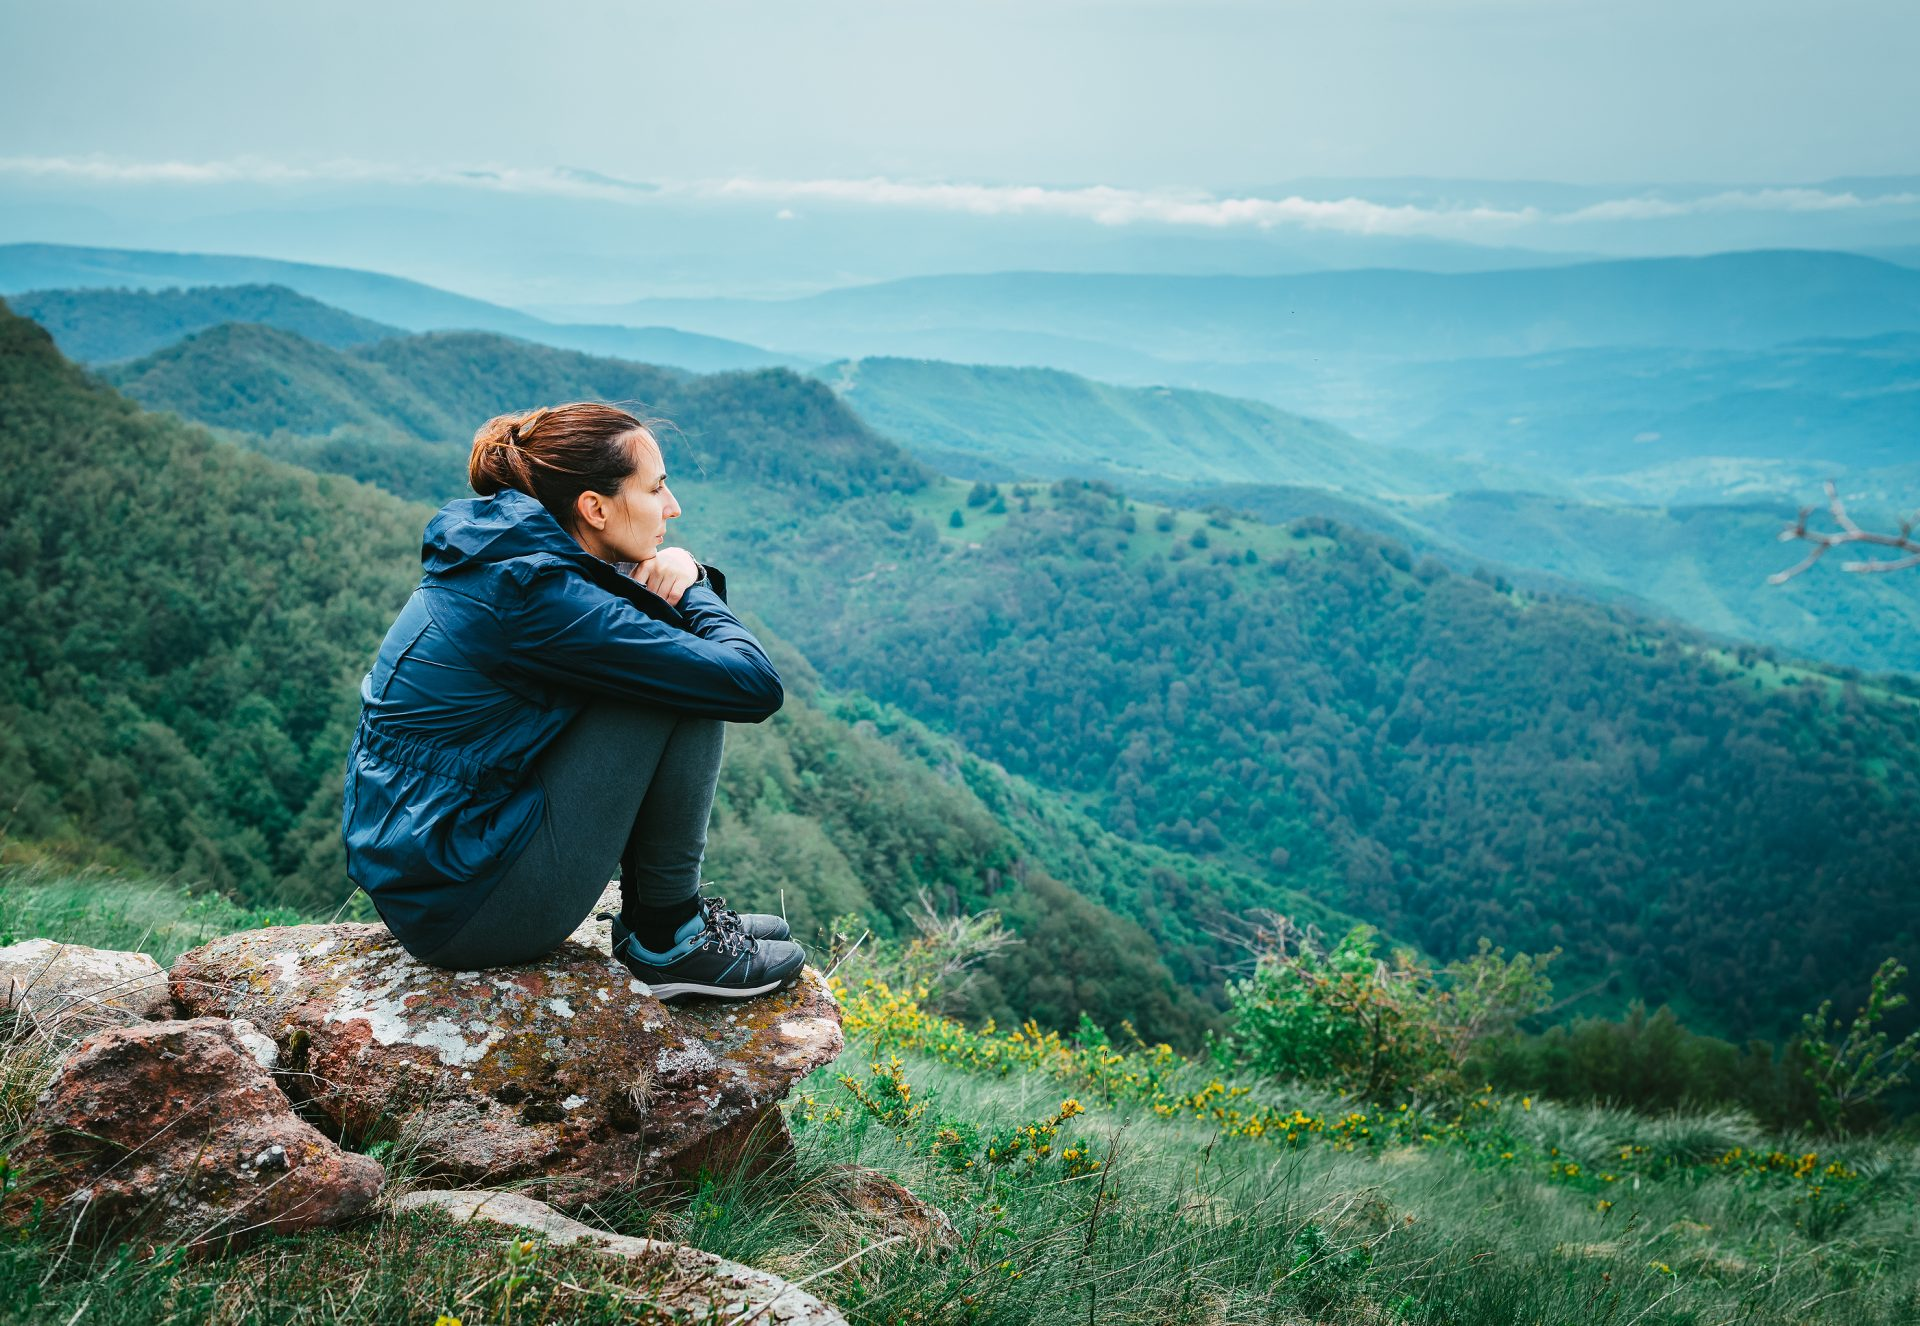 Learn about suicidal ideation, how suicidal ideation can start, and what to do if you or a loved one is experiencing it. Get help at Corner Canyon Health Center.